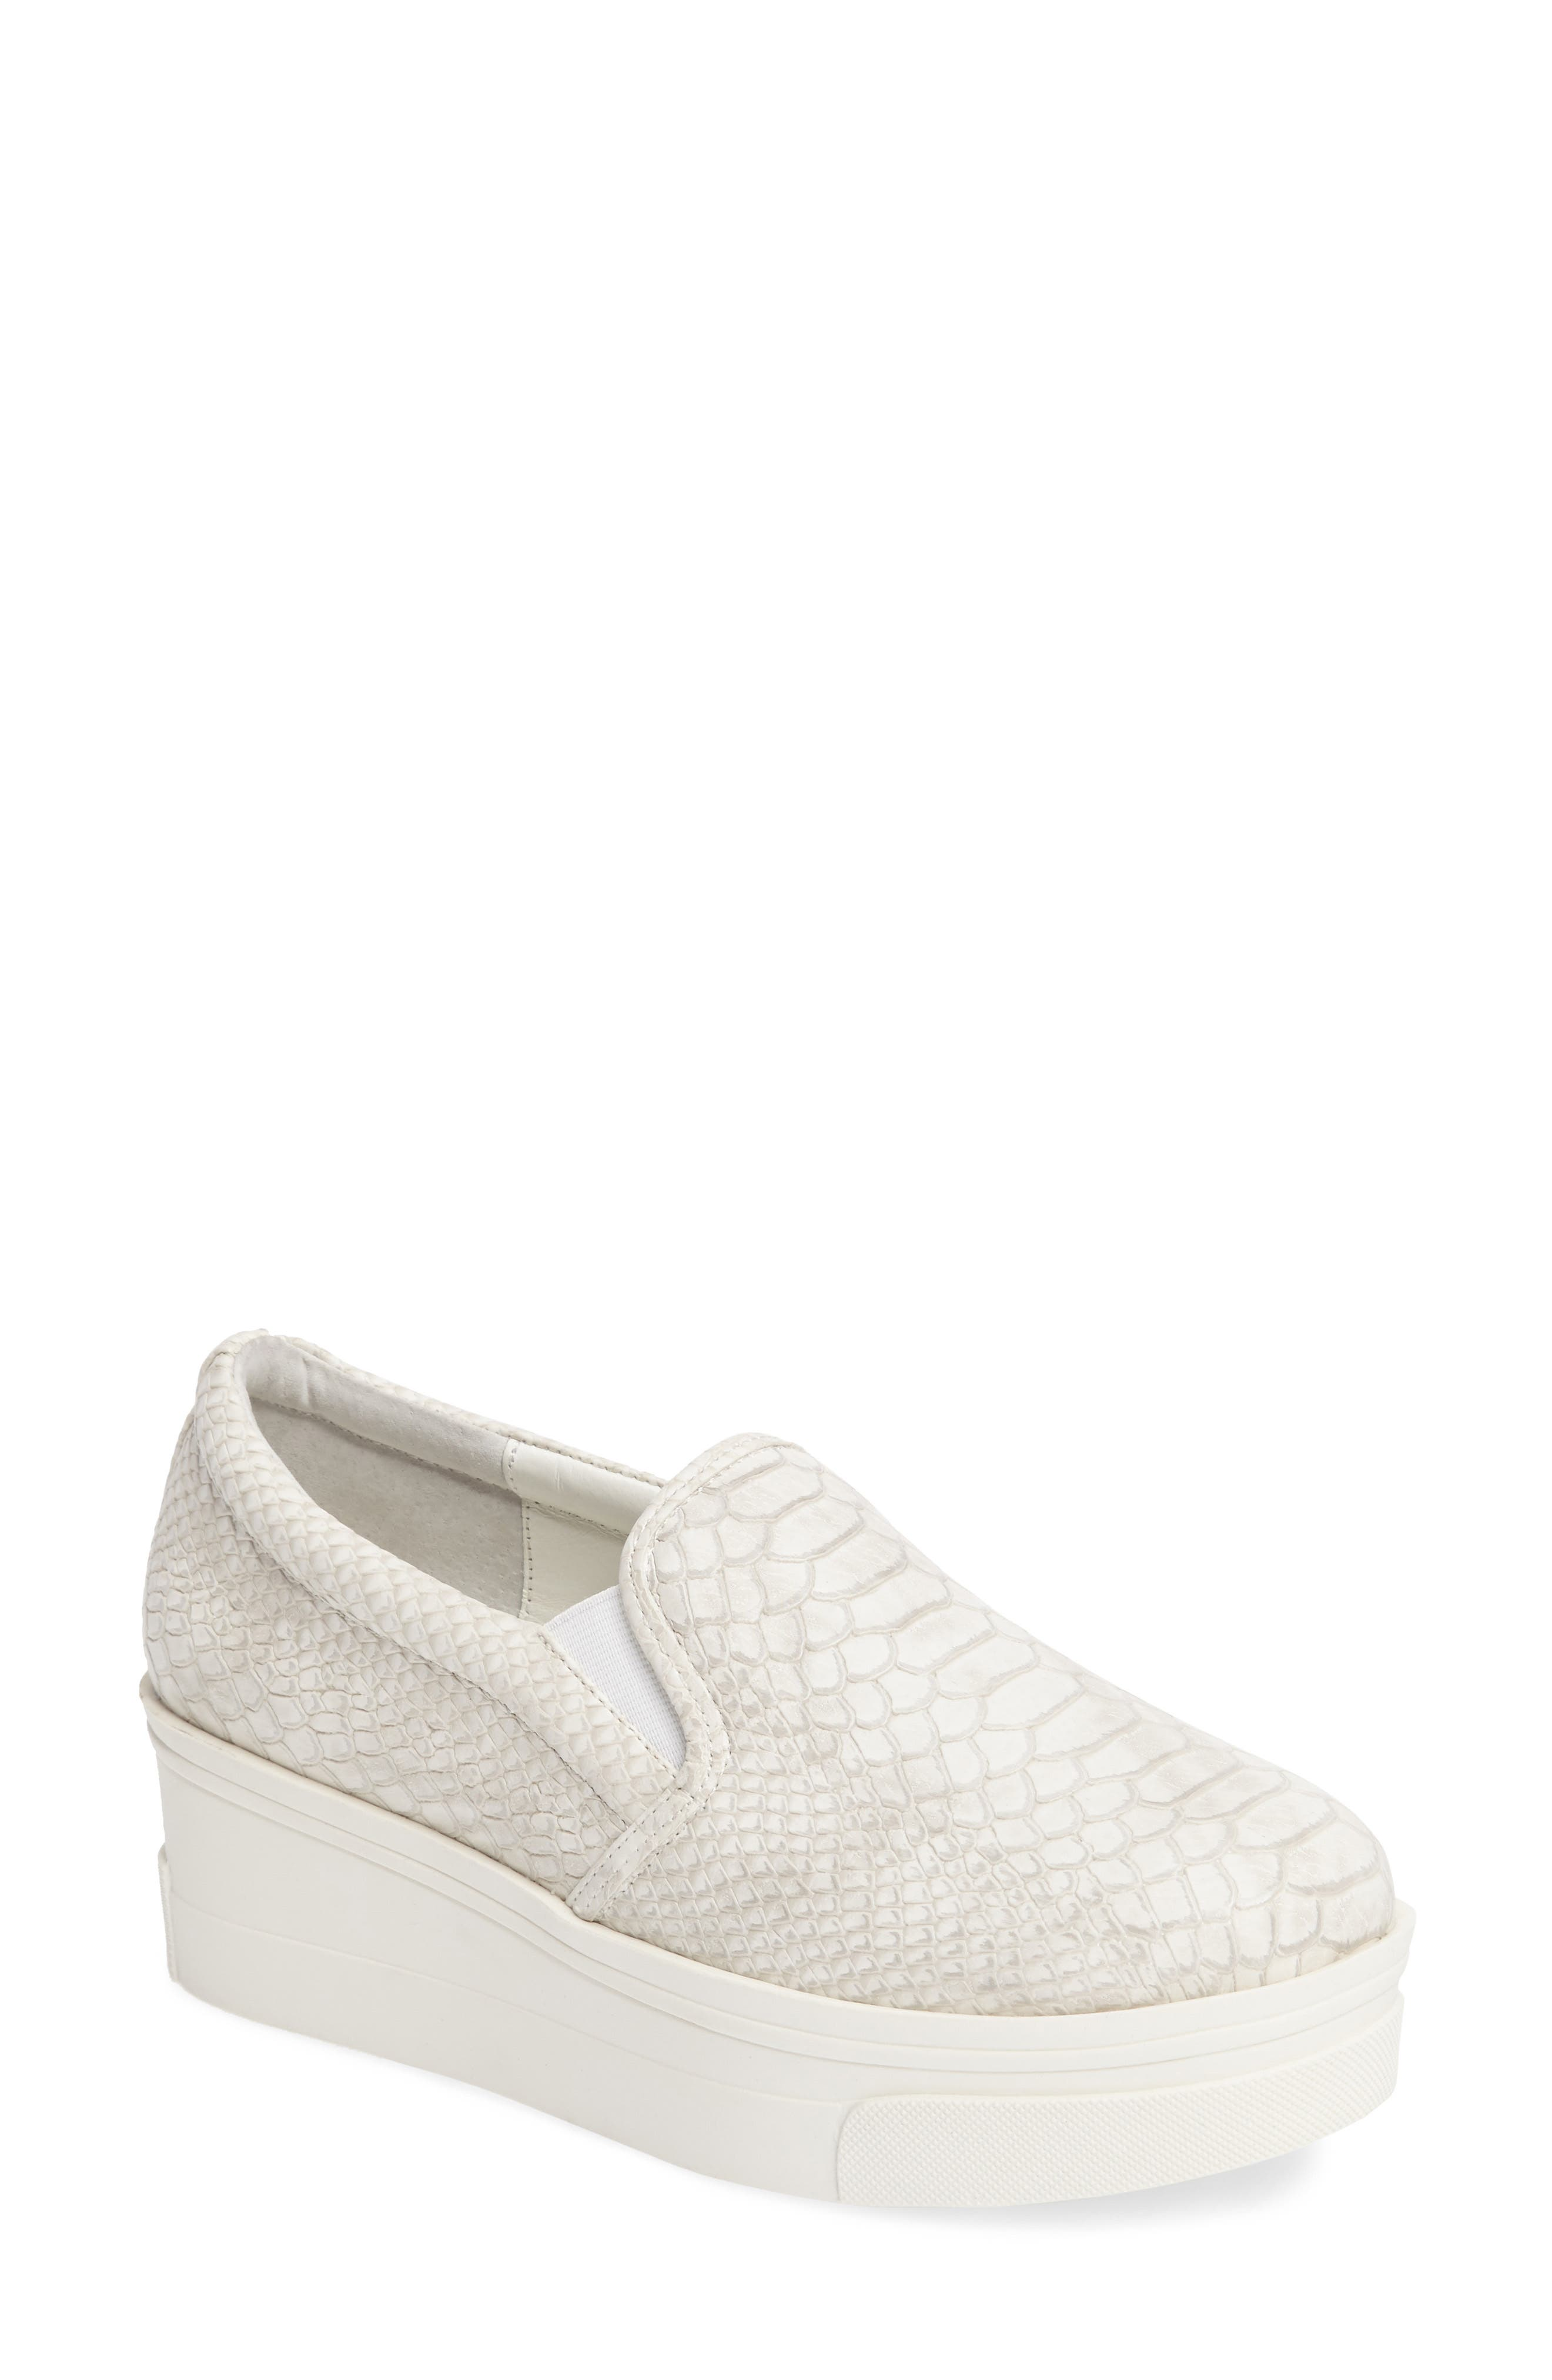 Genna Slip-On Sneaker,                         Main,                         color, White Embossed Leather